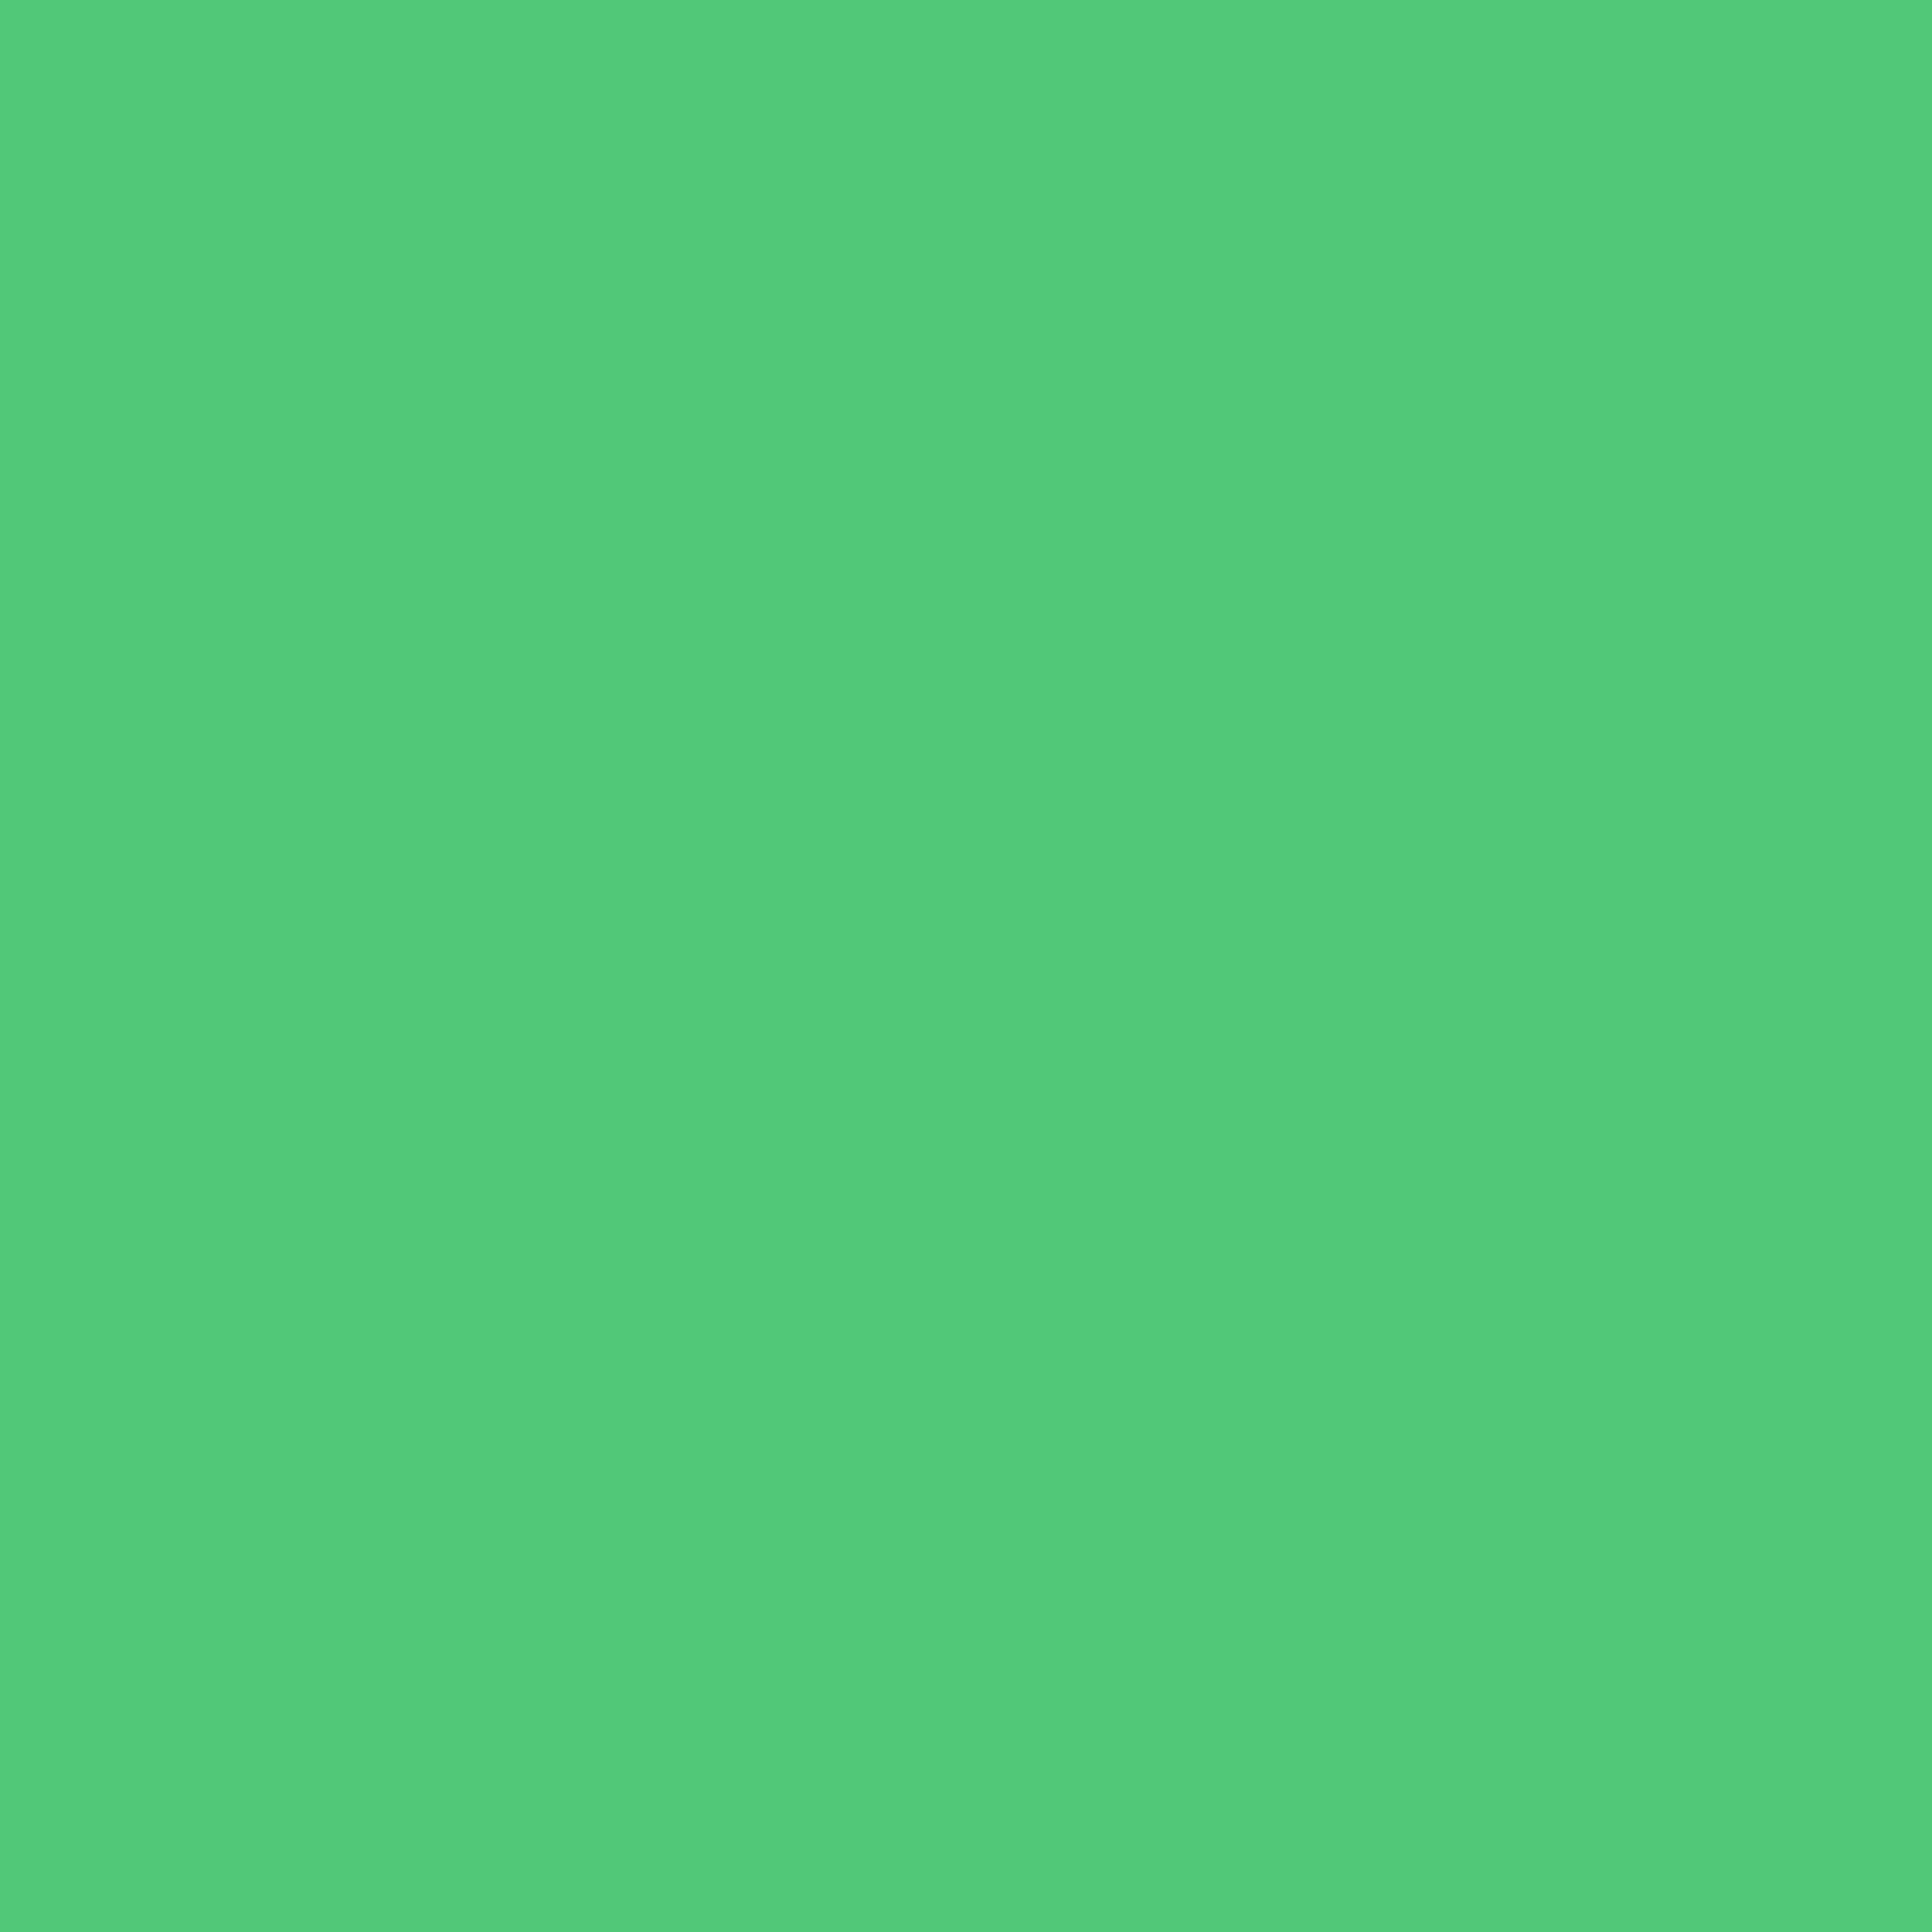 2048x2048 Emerald Solid Color Background